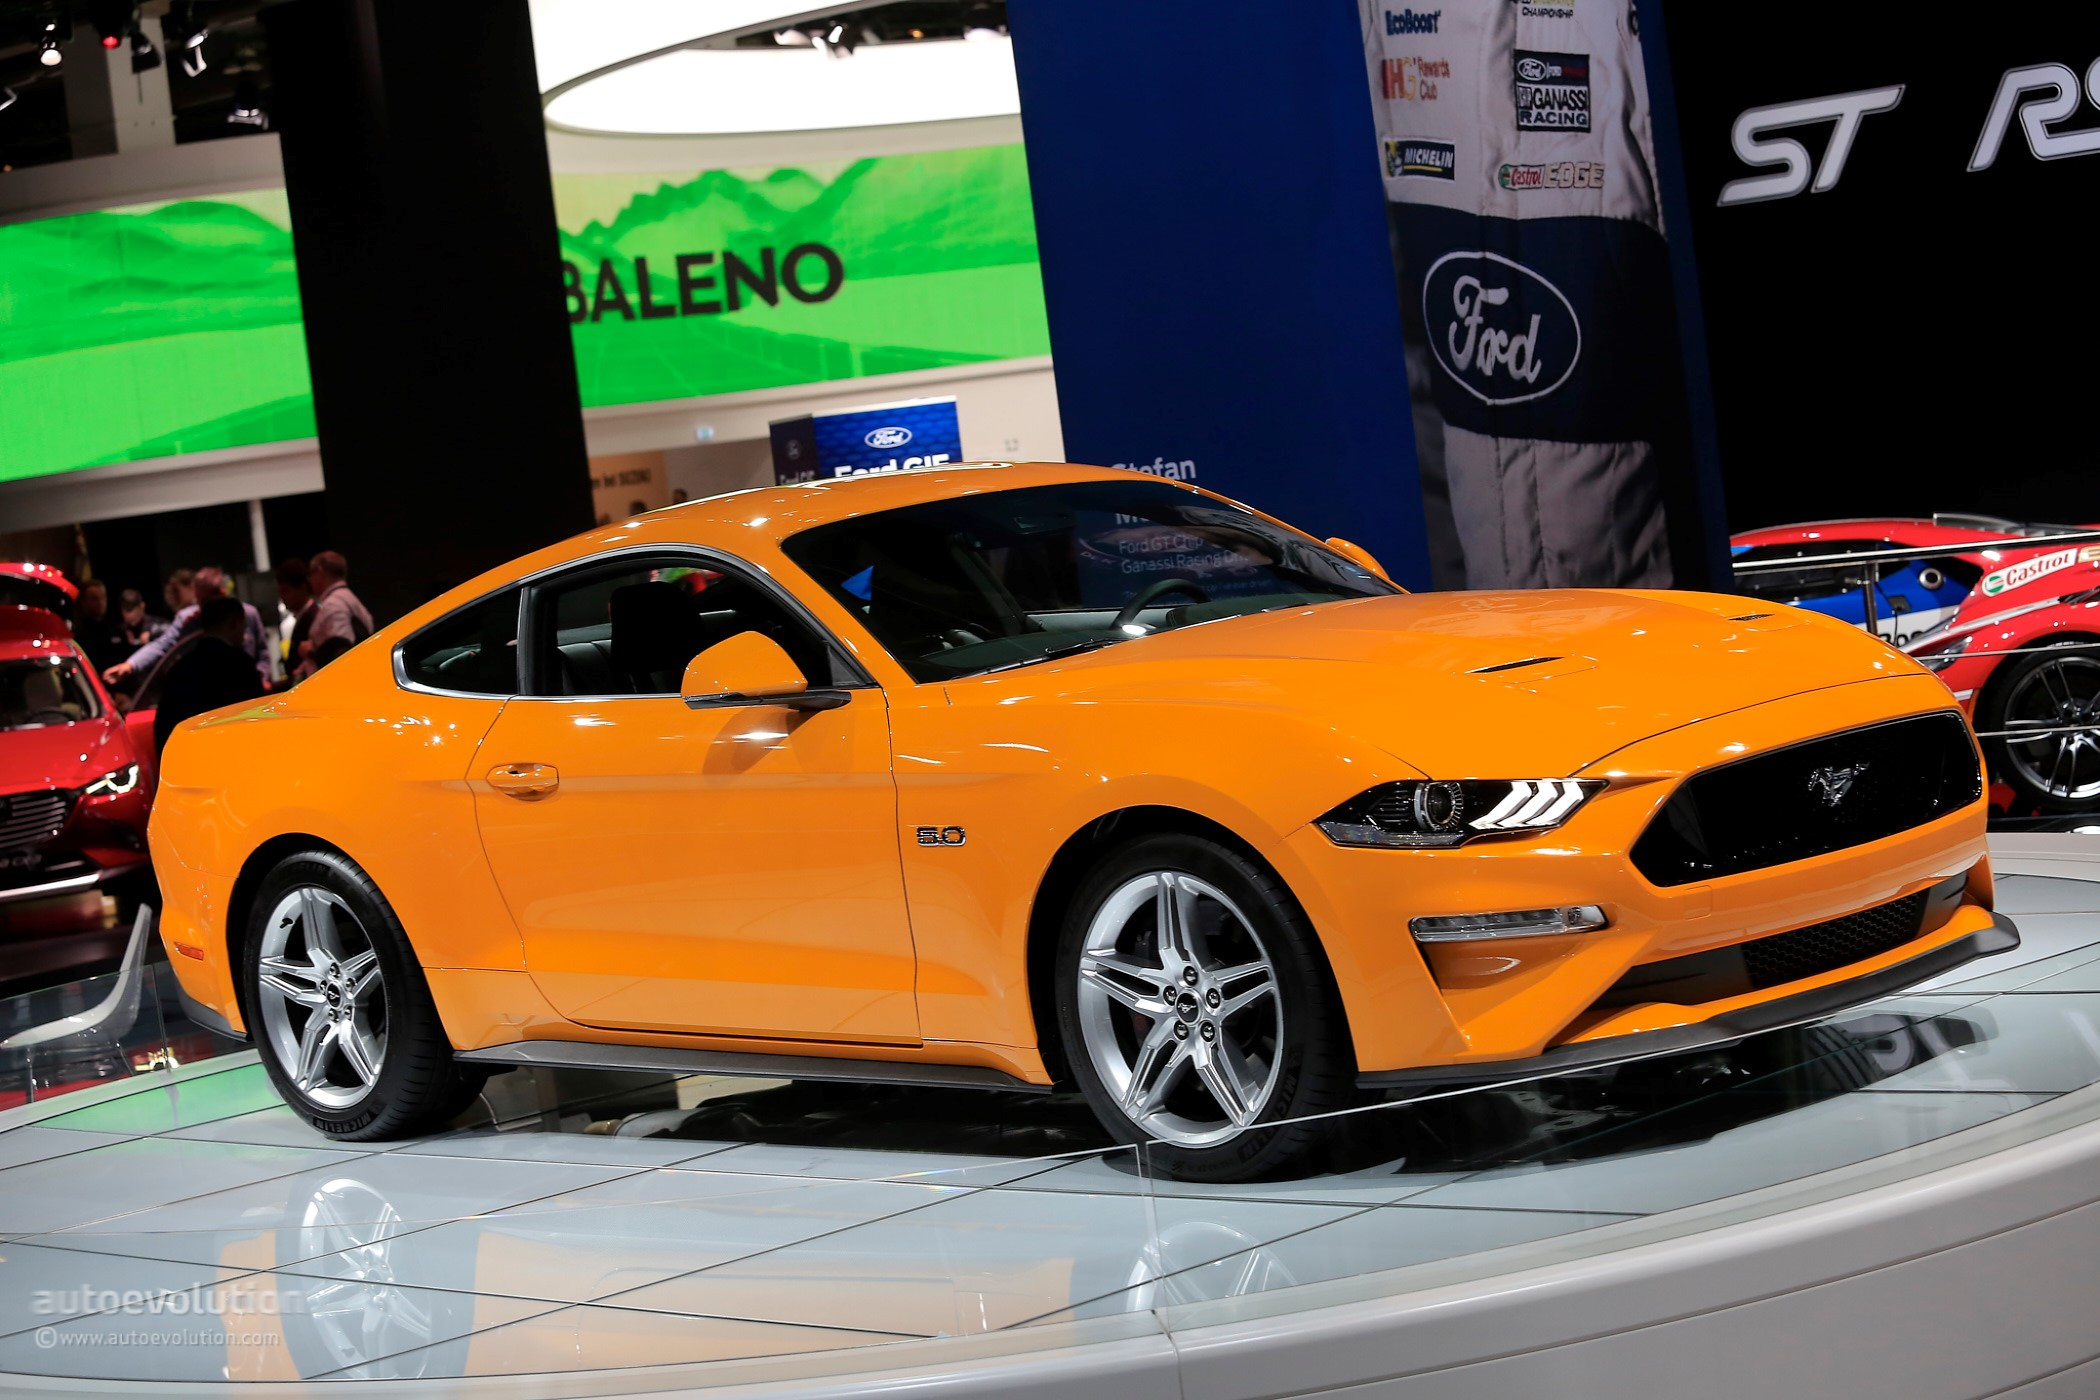 And Then There Was One: Mustang. Ford Cutting Cars by 2022